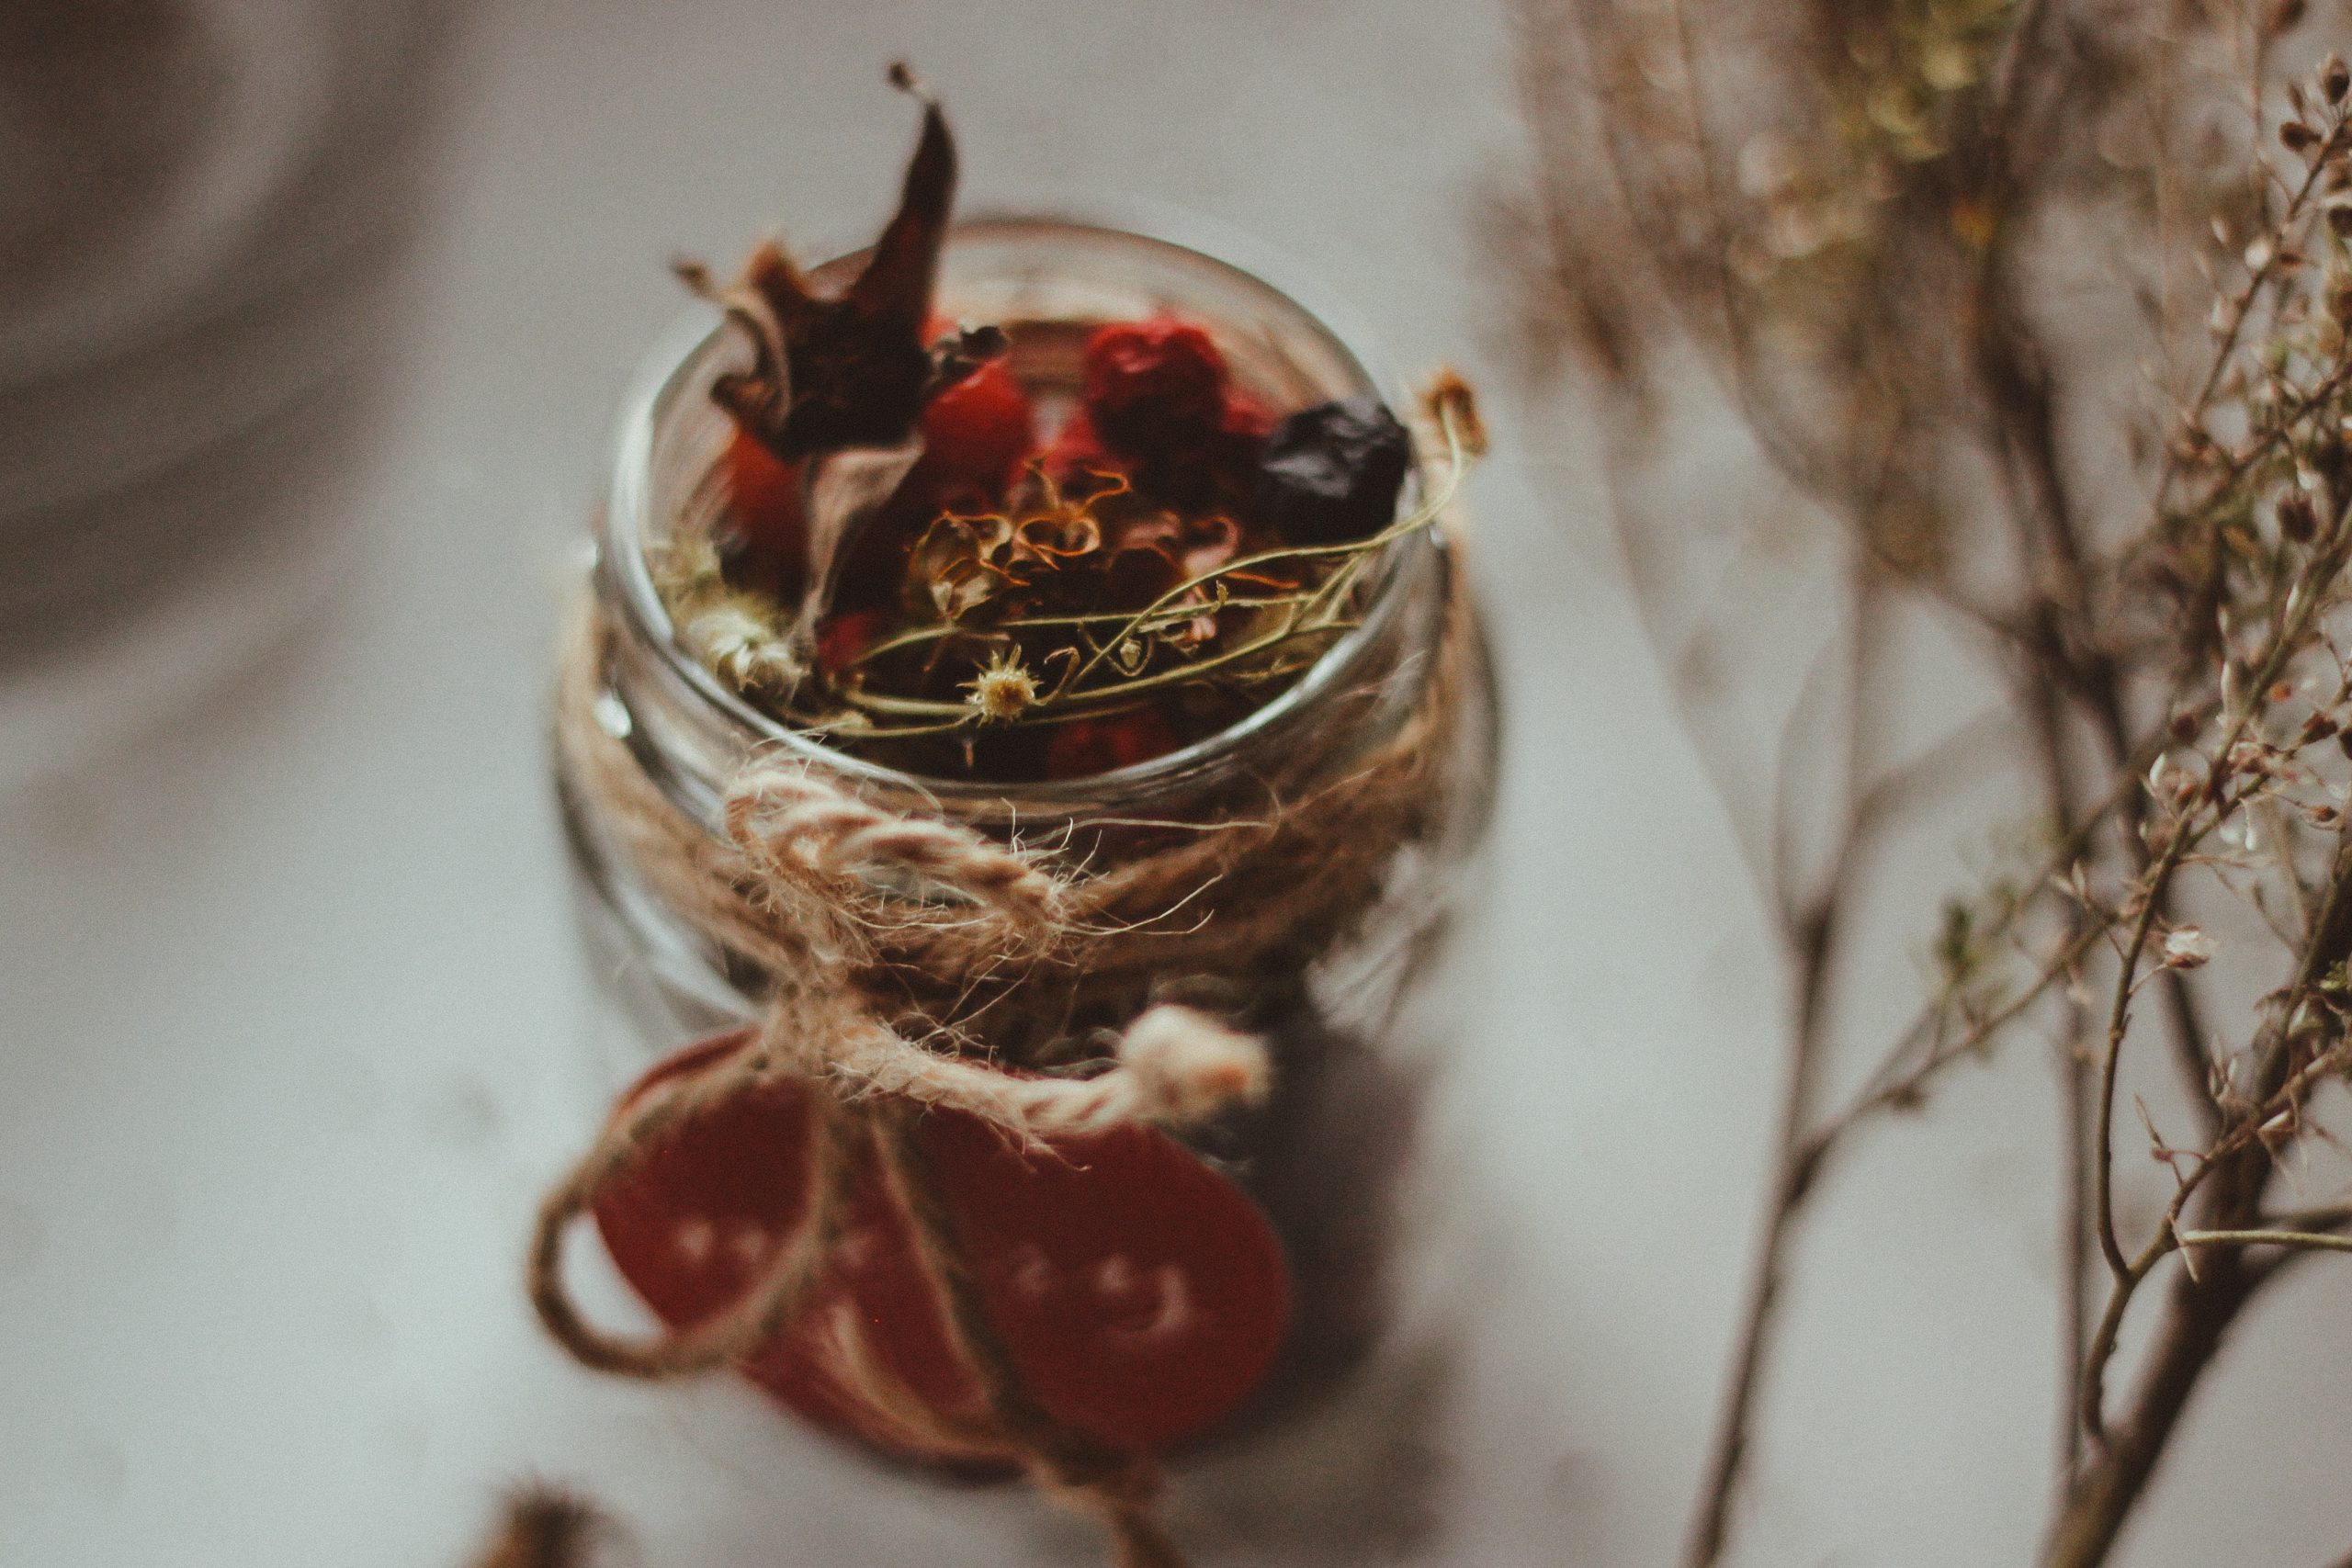 Ancient cultures have used flowers as spices and garnishes on their traditional cuisine.